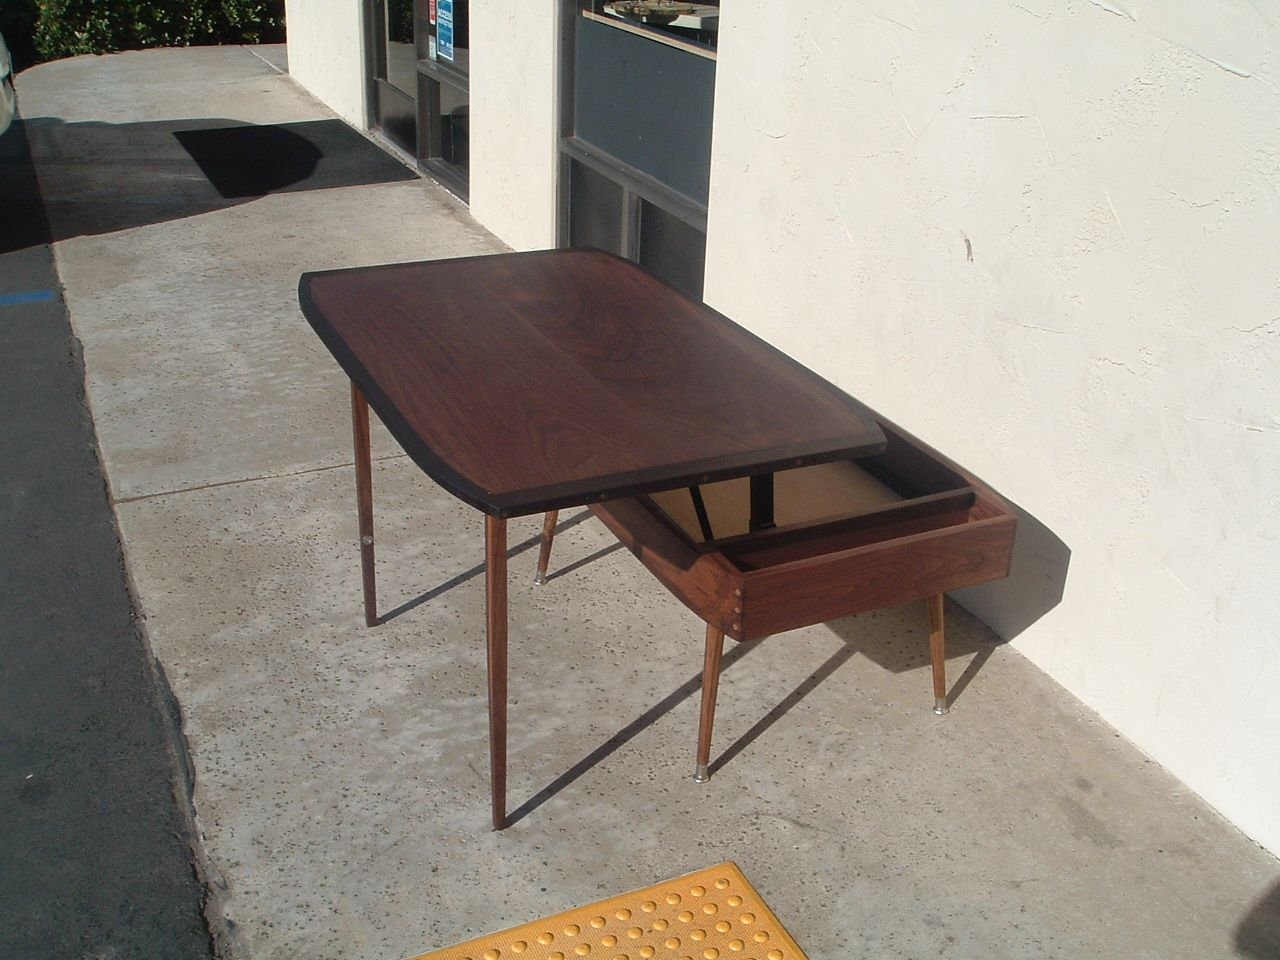 Hand Made MidCentury Modern LiftTop Coffee Table By Antikea - Mid century lift top coffee table